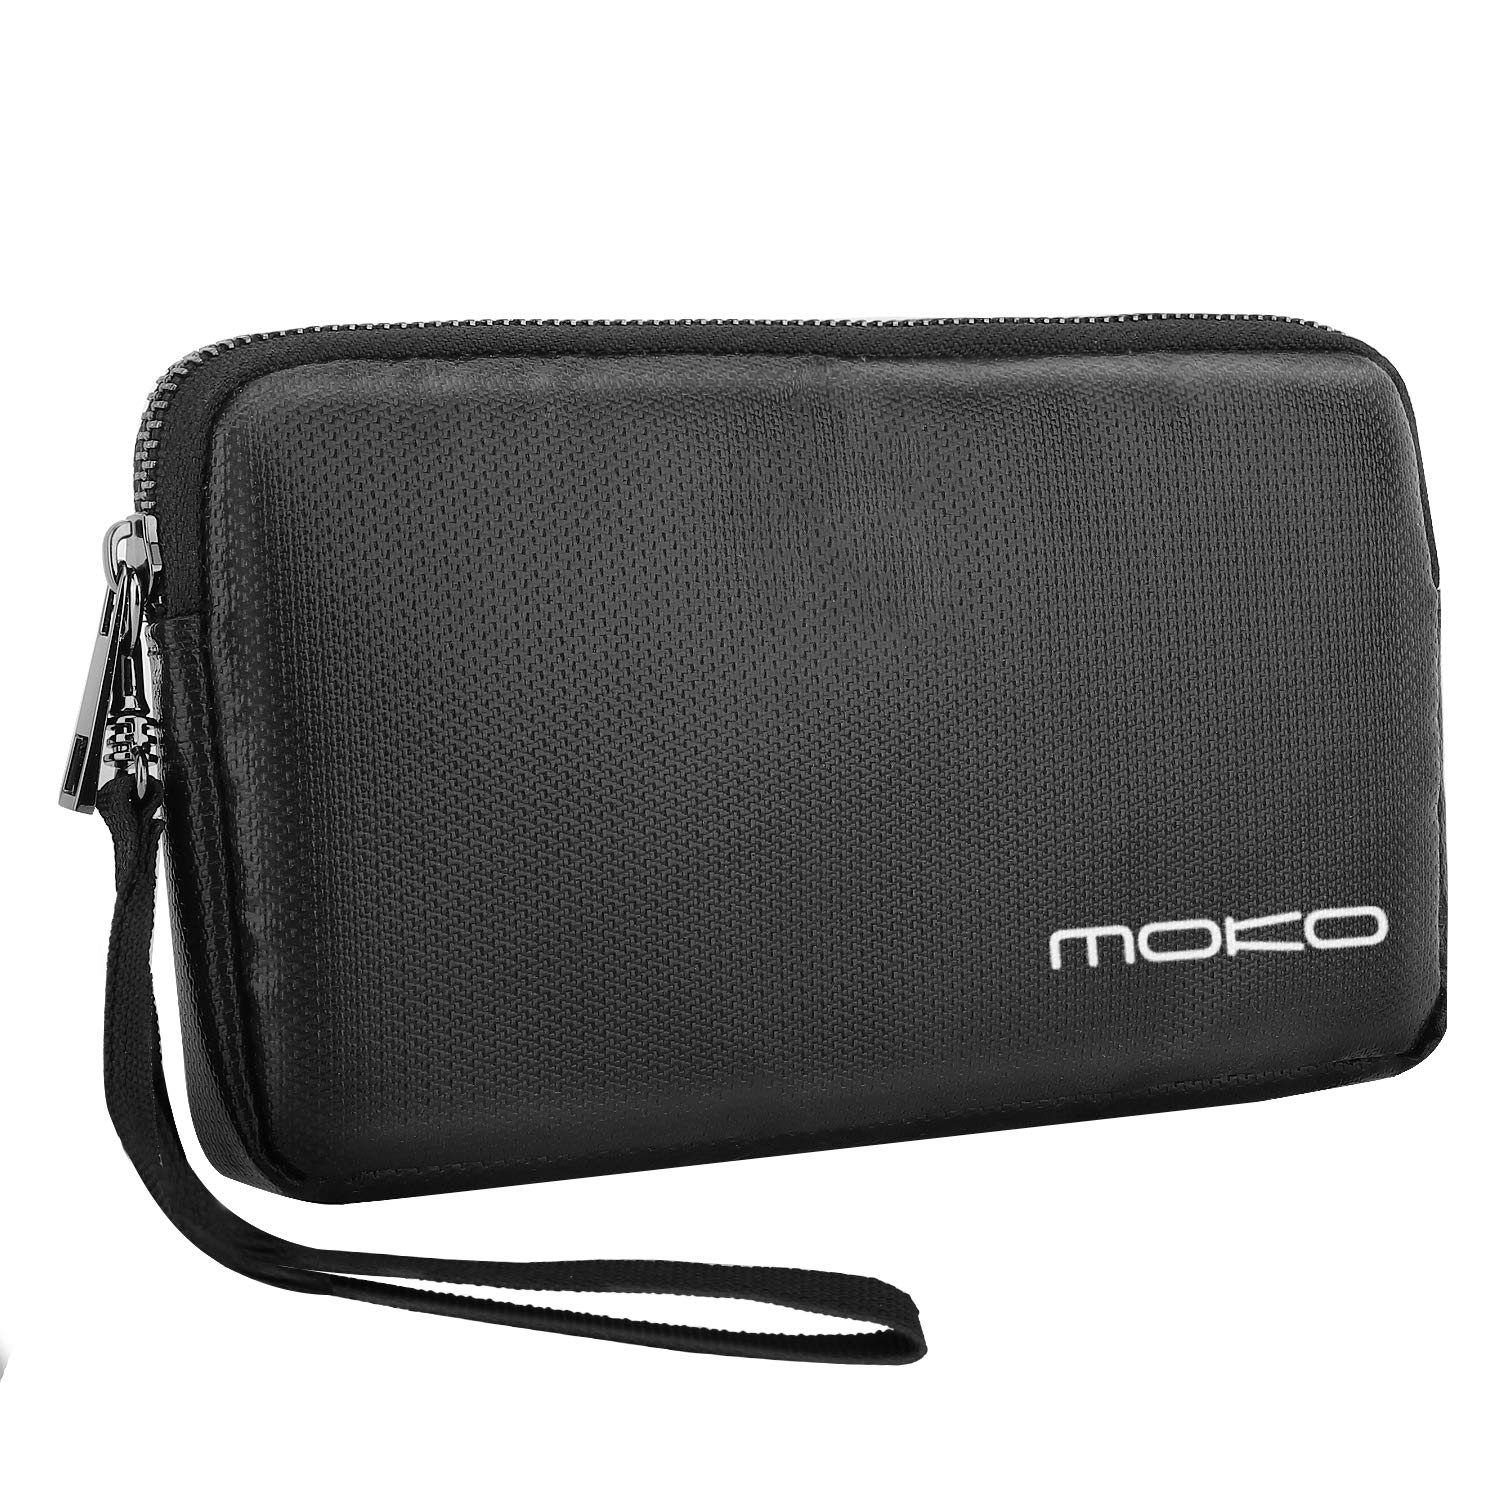 MoKo Power Bank Carrying Bag, Zipper Fire Resistant Electronic Accessories Storage Case, Portable Fireproof Hard Drive Pouch USB Cable Travel Gear - Black